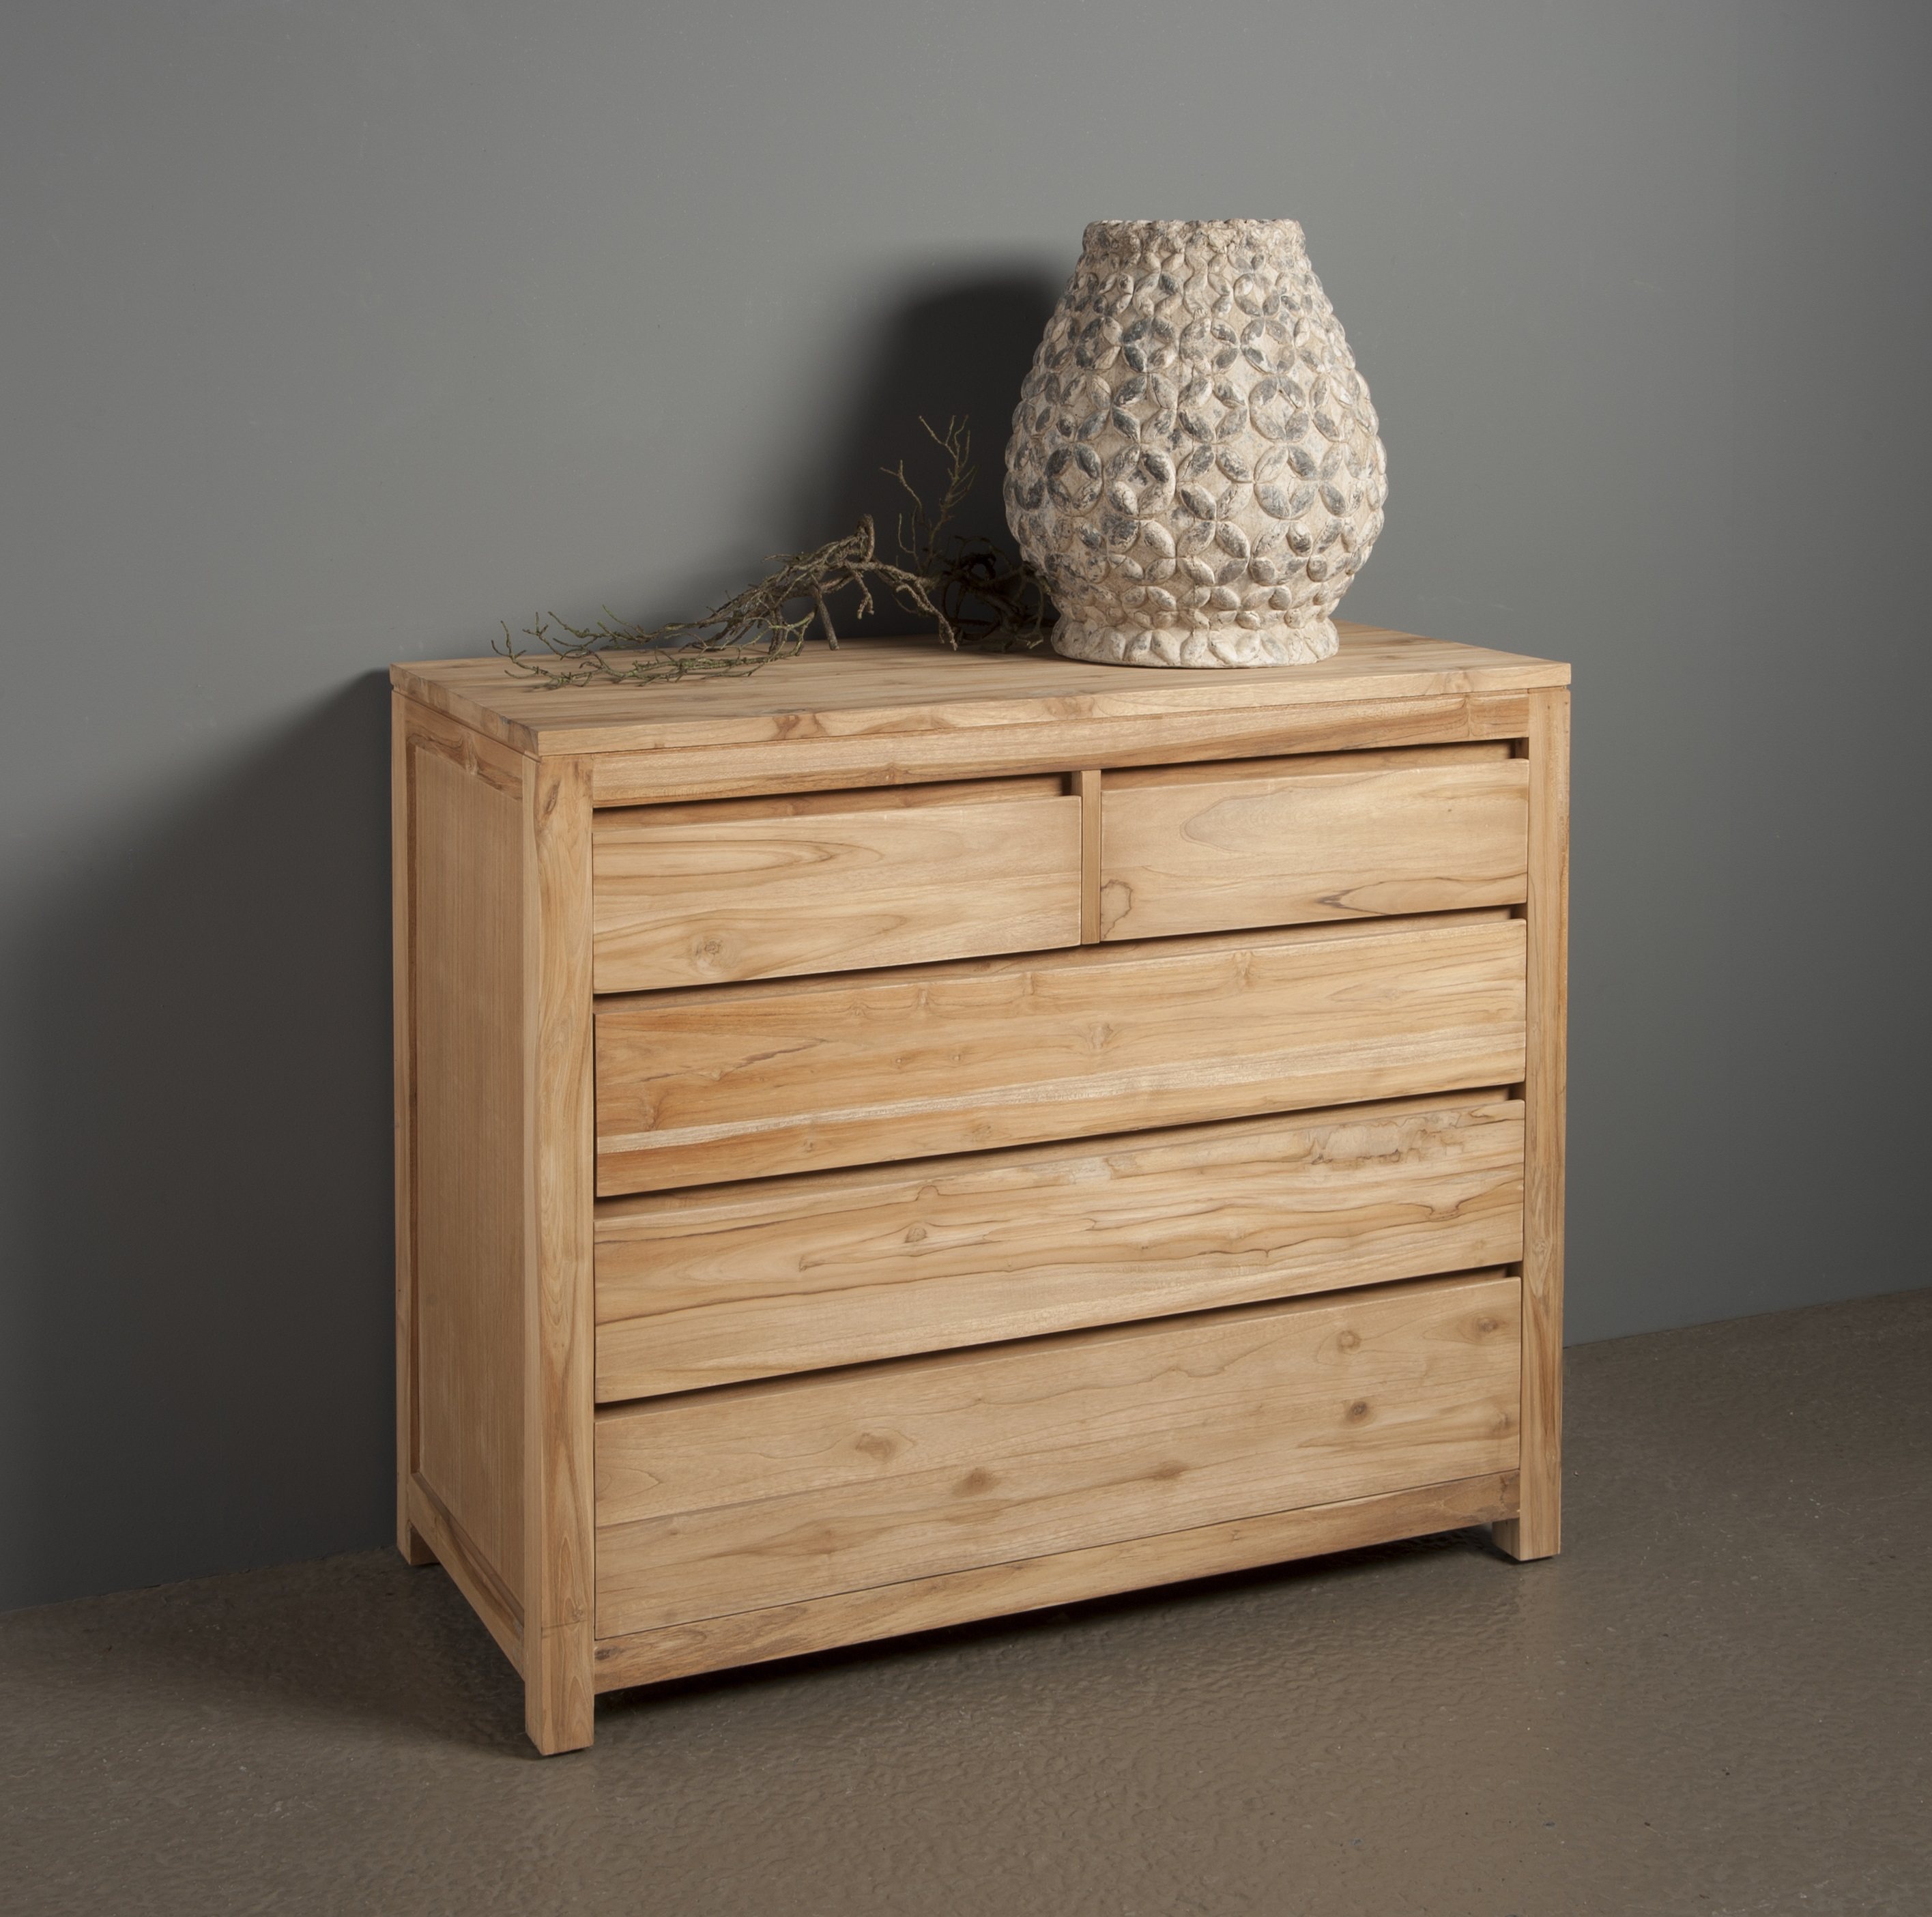 Leeds Commode Teak Natural 110cm